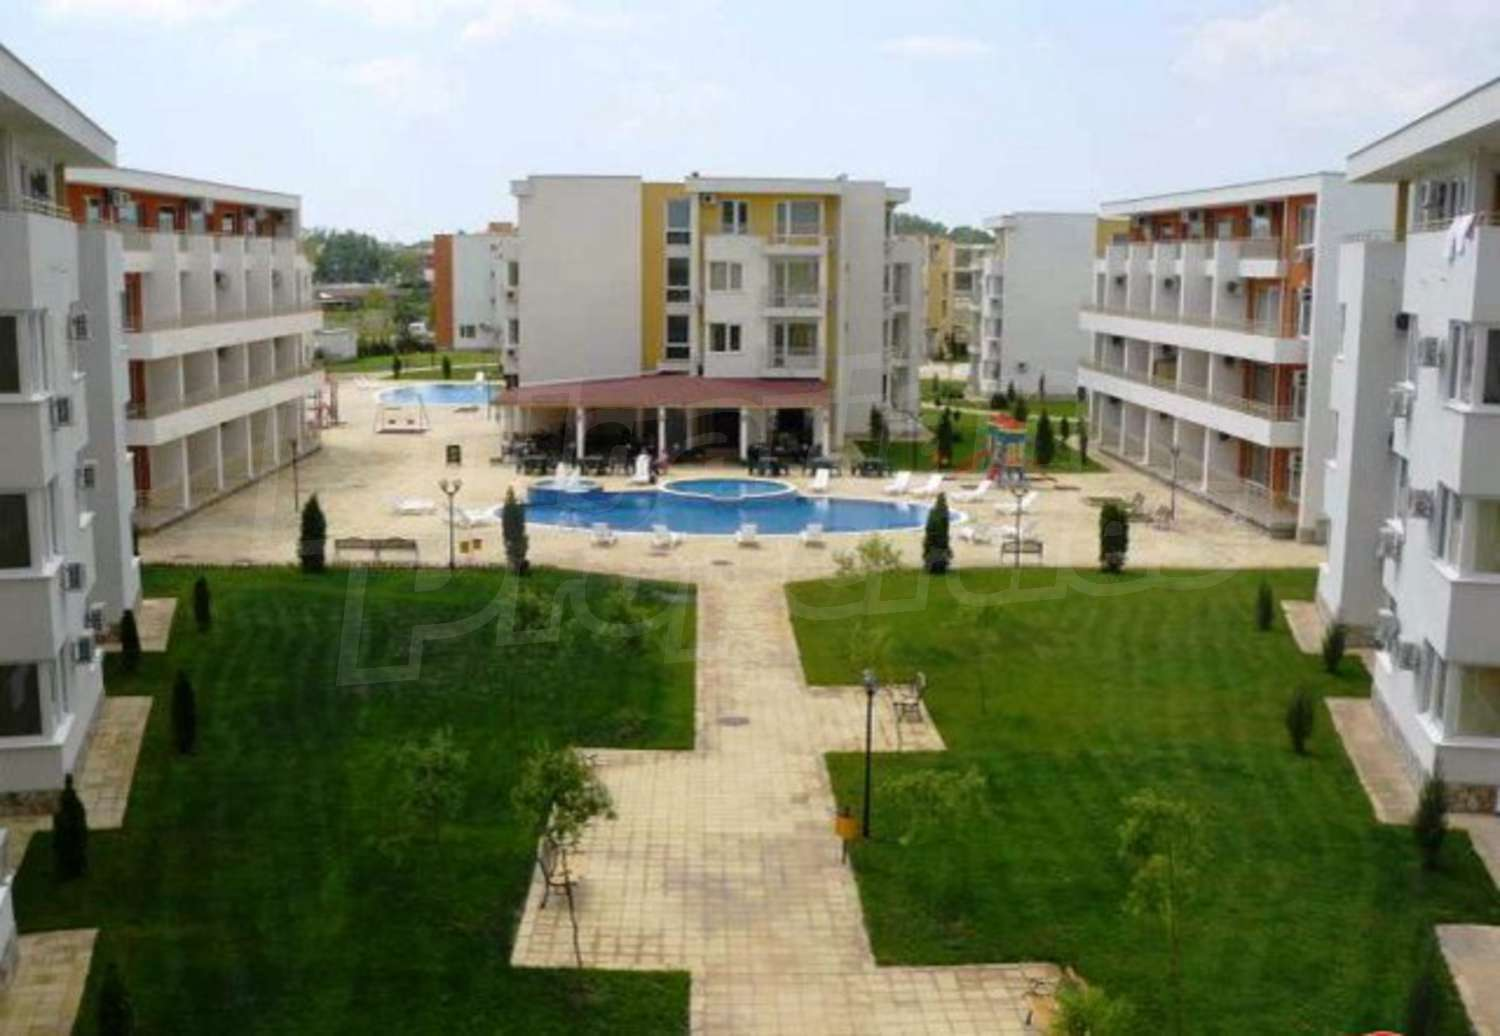 2 Bedroom Apartment For Sale In Nessebar Fort Club In